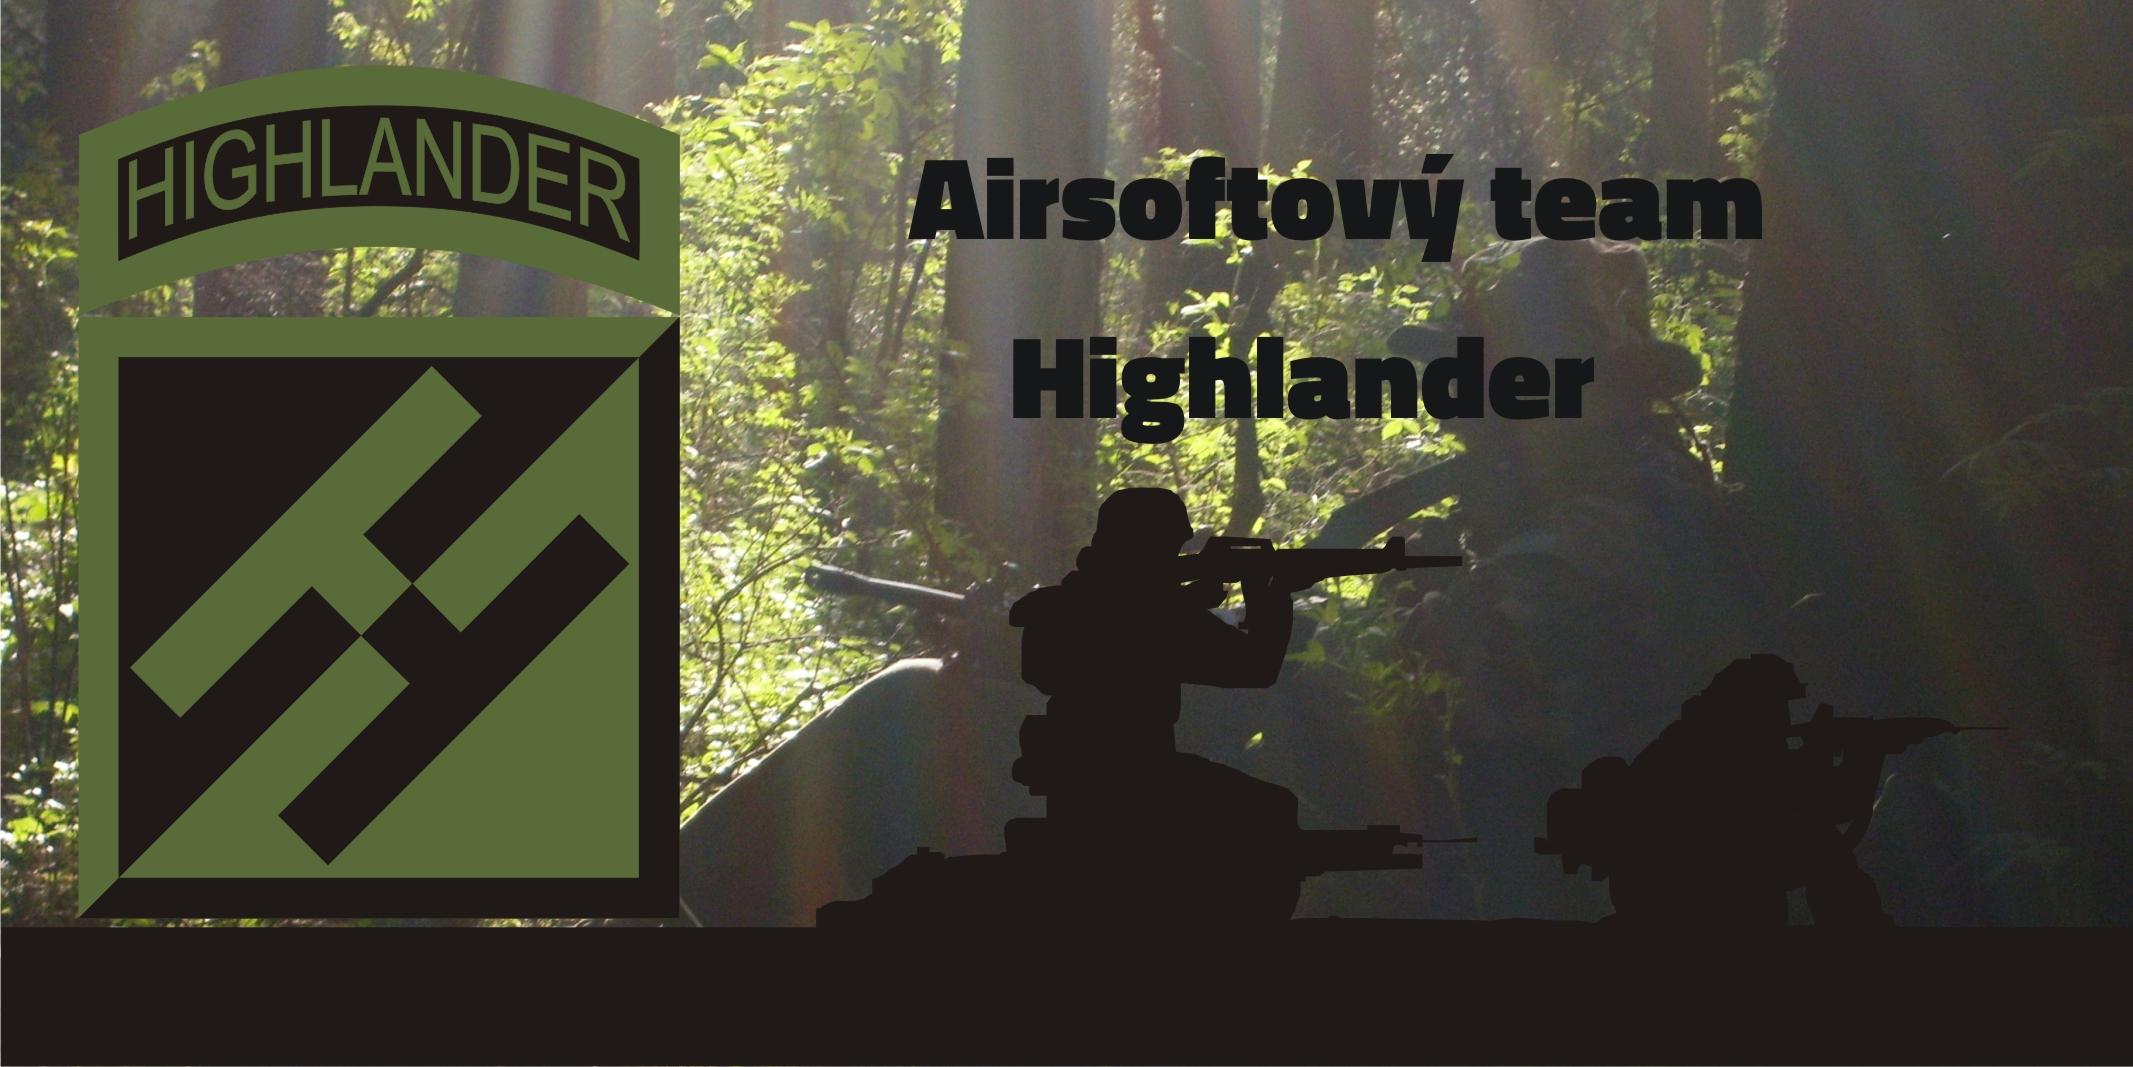 slide /fotky61448/slider/banery---Highlander.jpg